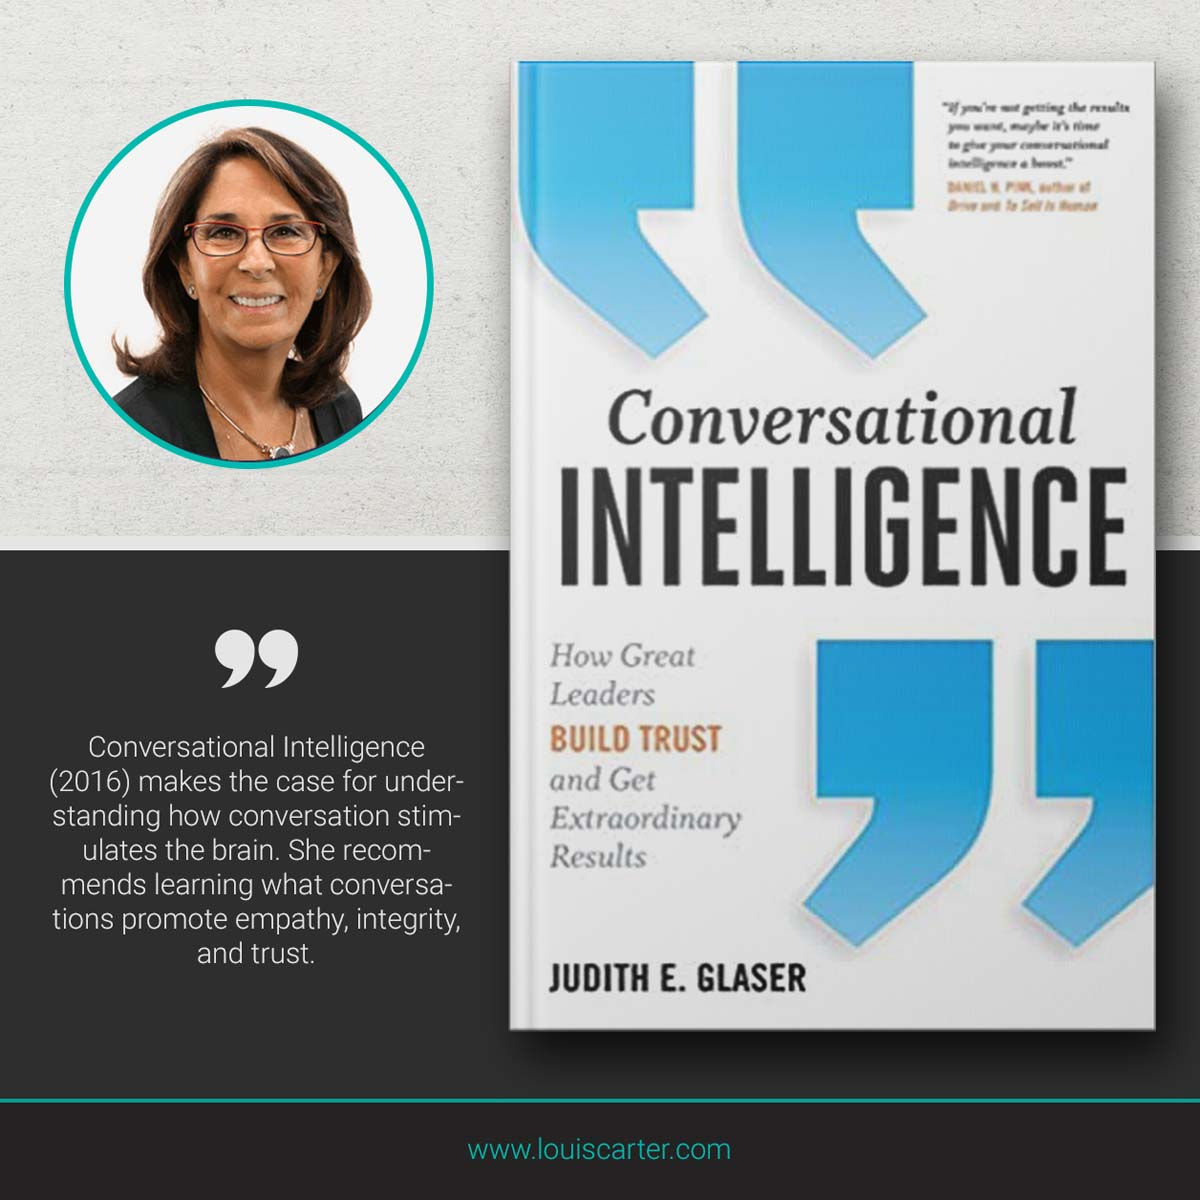 Image of books on Leadership Conversational Intelligence by Judith E Glaser.